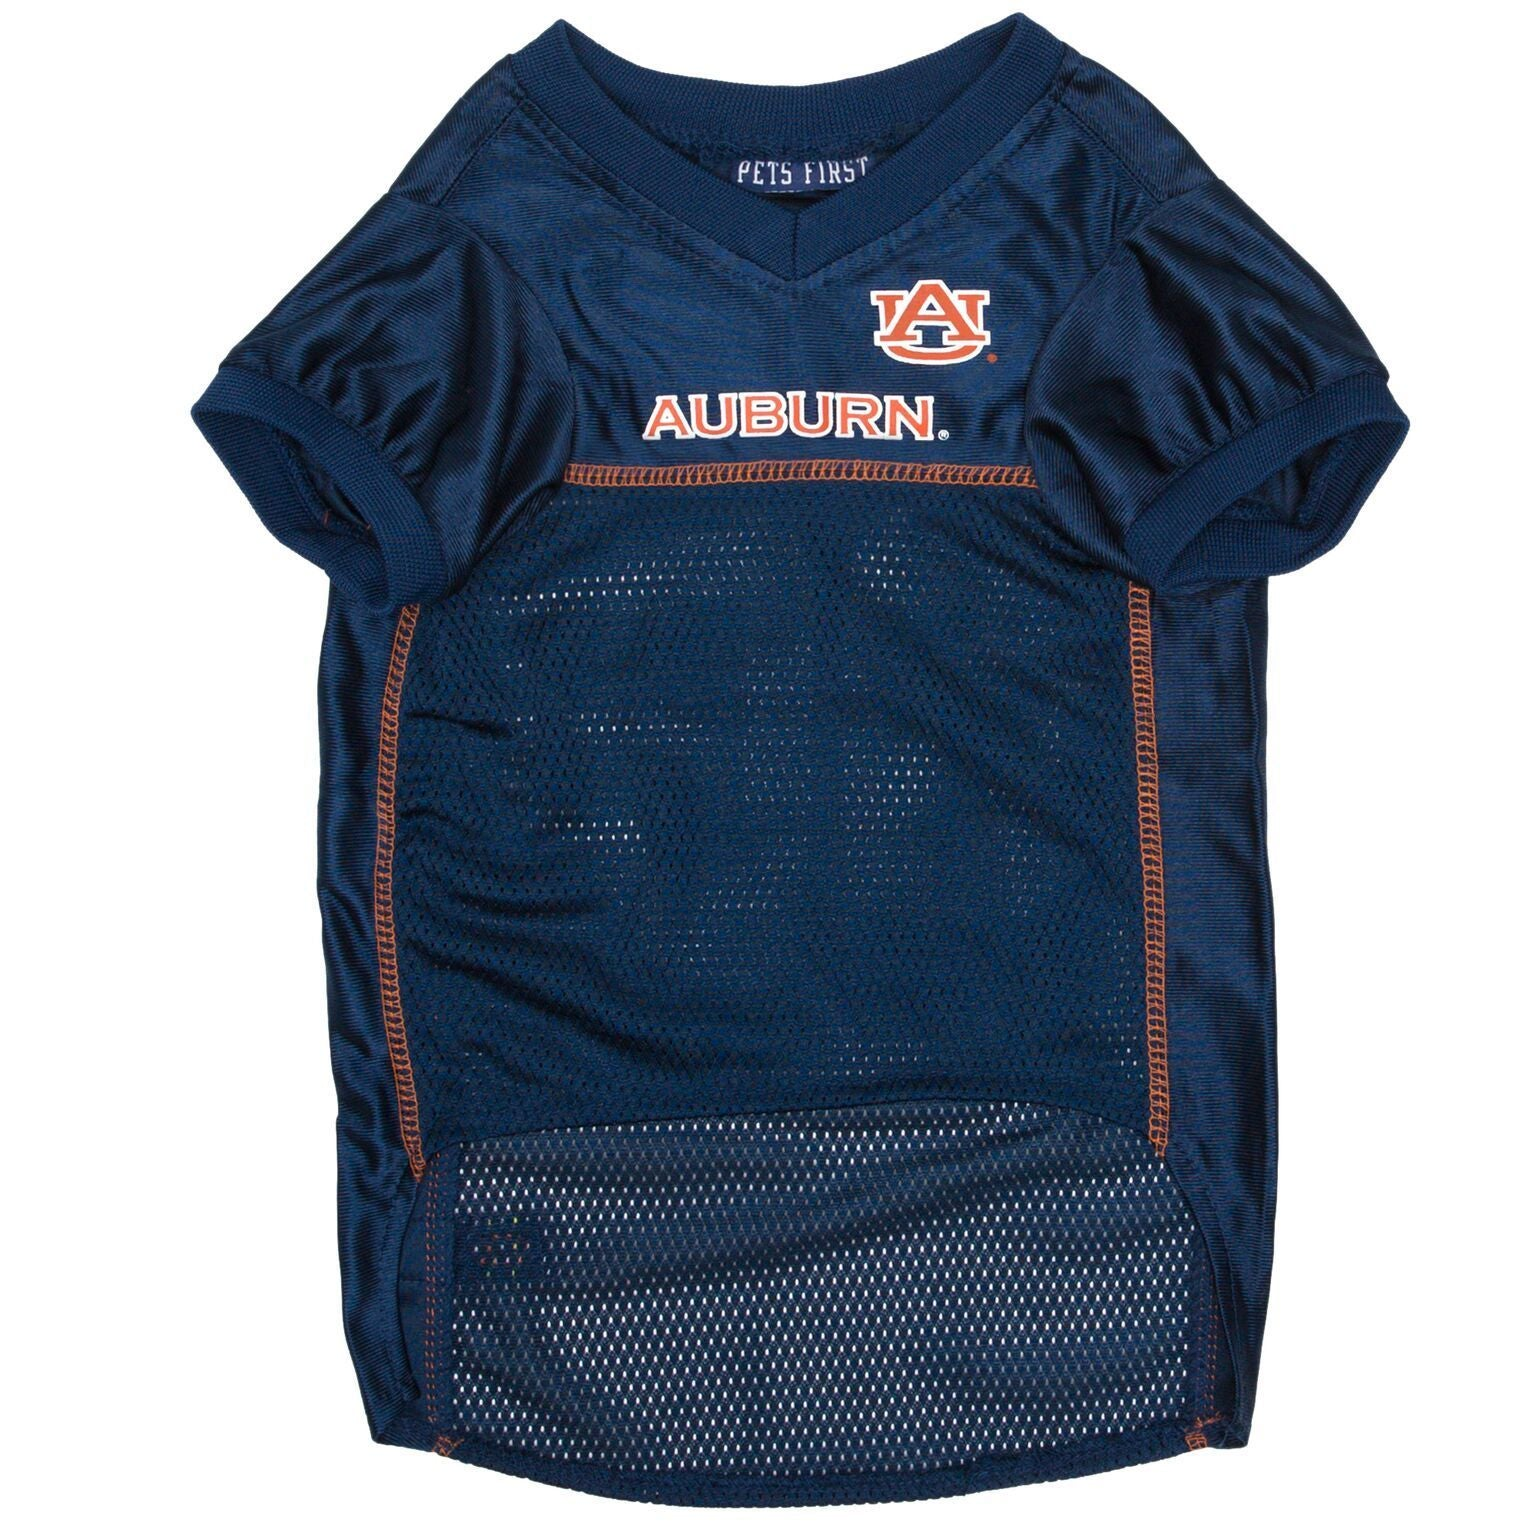 Auburn Tigers Puppy Dog Football Jersey - Jersey Champs